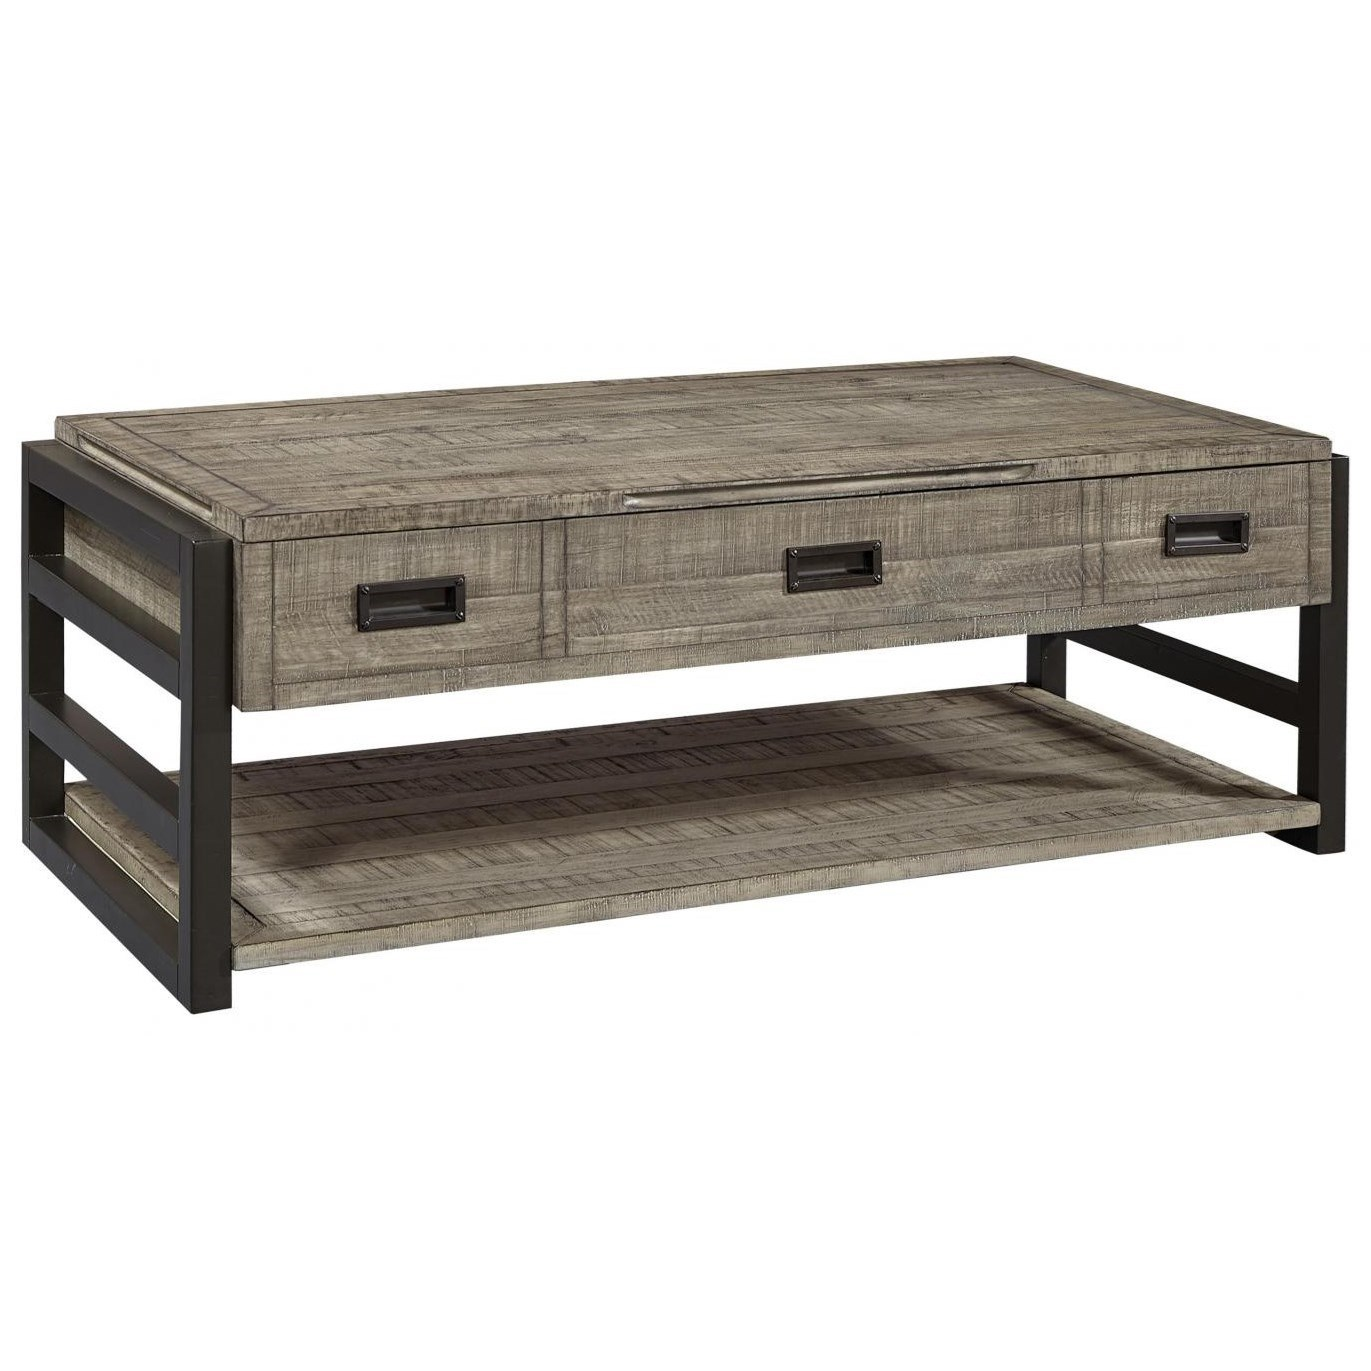 Grayson Lift Top Cocktail Table by Aspenhome at Walker's Furniture